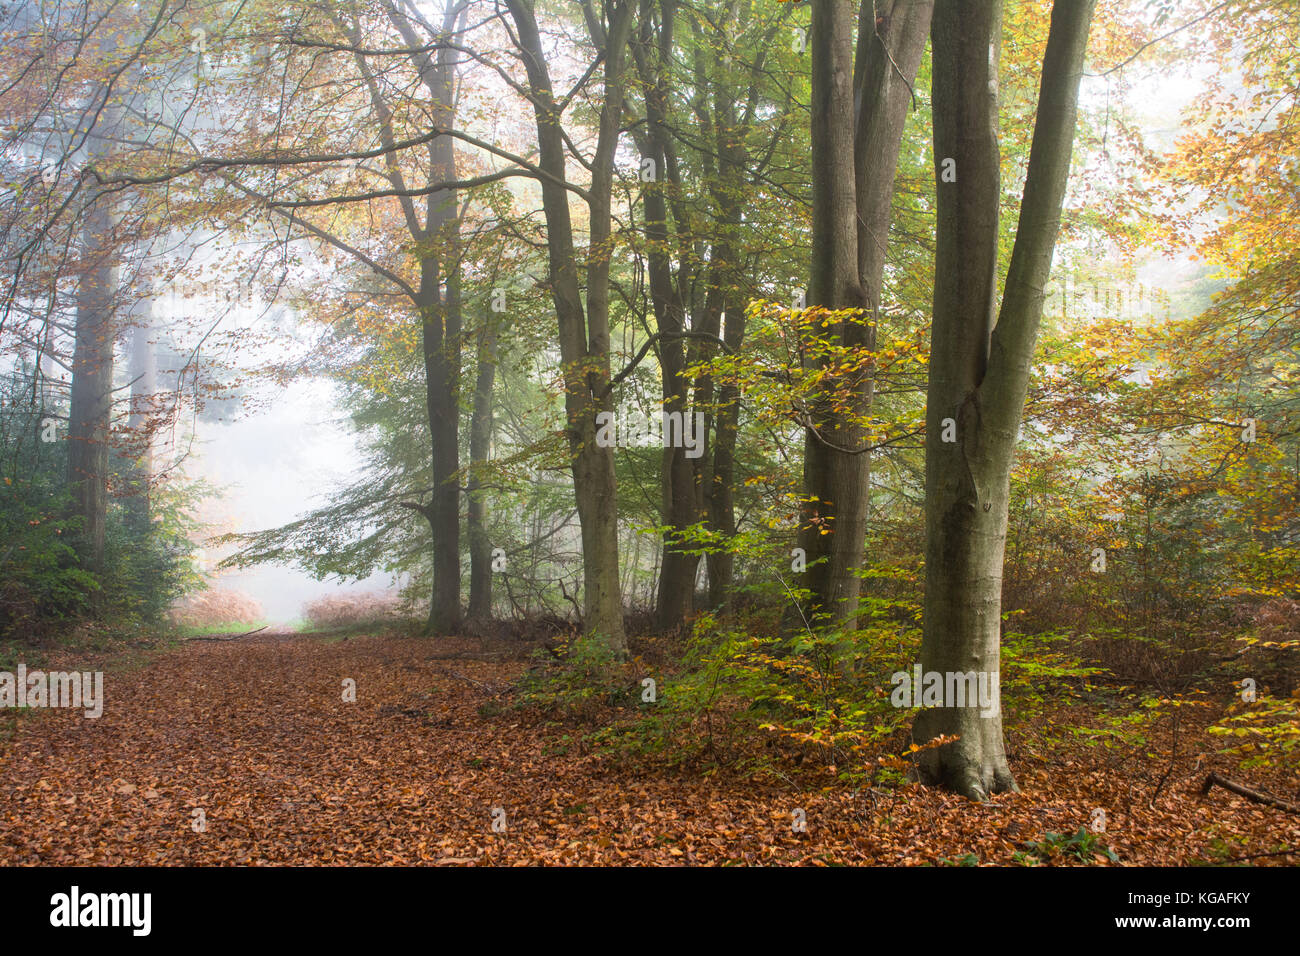 woodland-landscape-on-a-foggy-autumn-morning-at-ranmore-common-in-KGAFKY.jpg